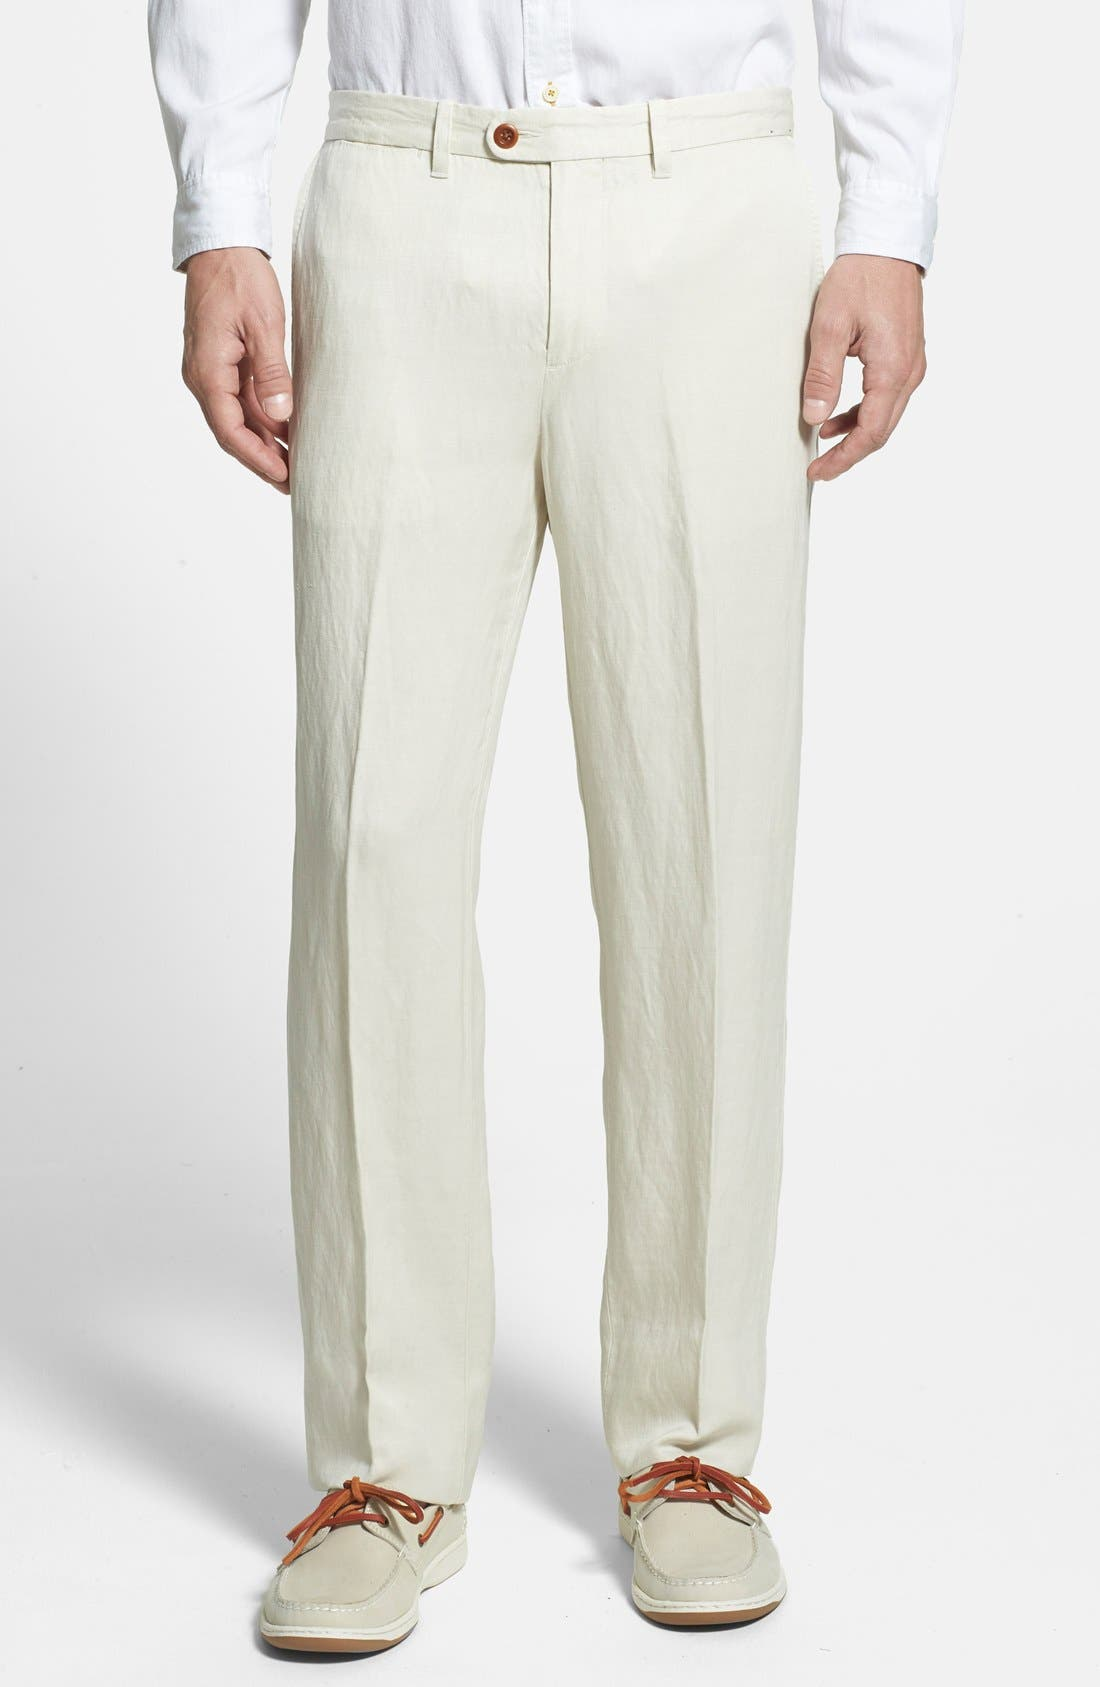 'La Jolla' Flat Front Pants,                             Main thumbnail 1, color,                             Warm Sand Beige